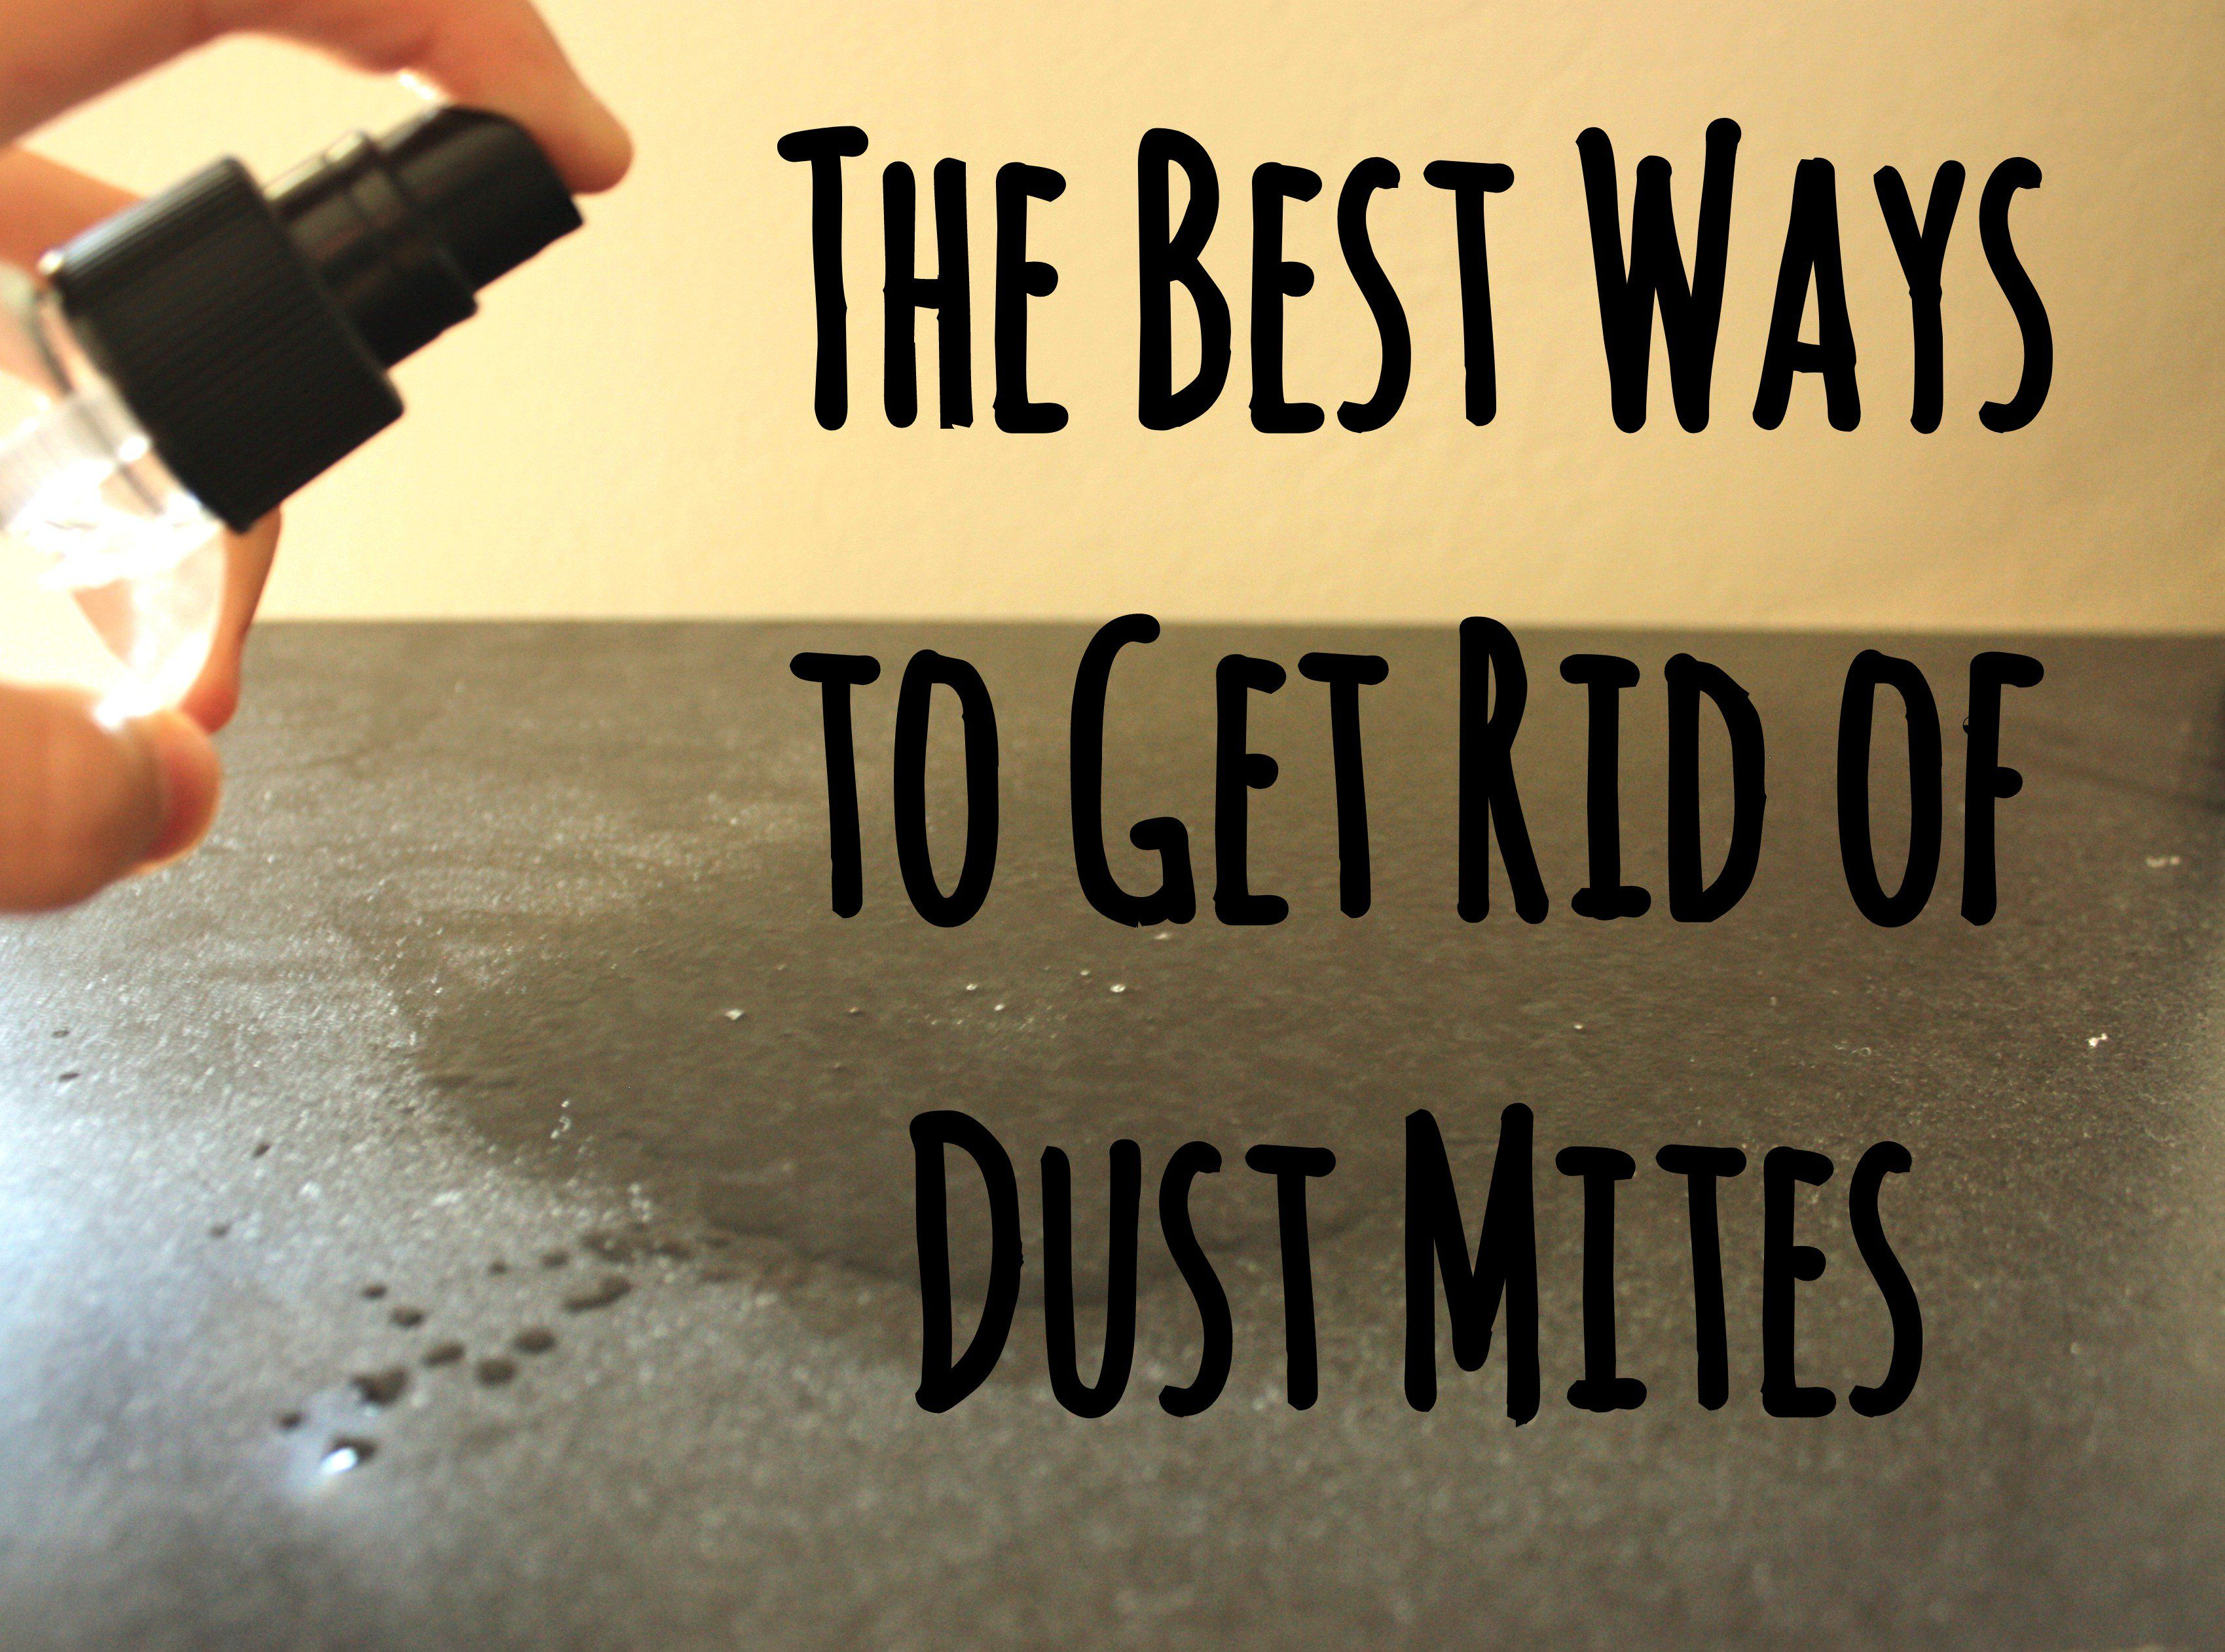 12 Guaranteed Ways to Get Rid of Dust Mites in Your House